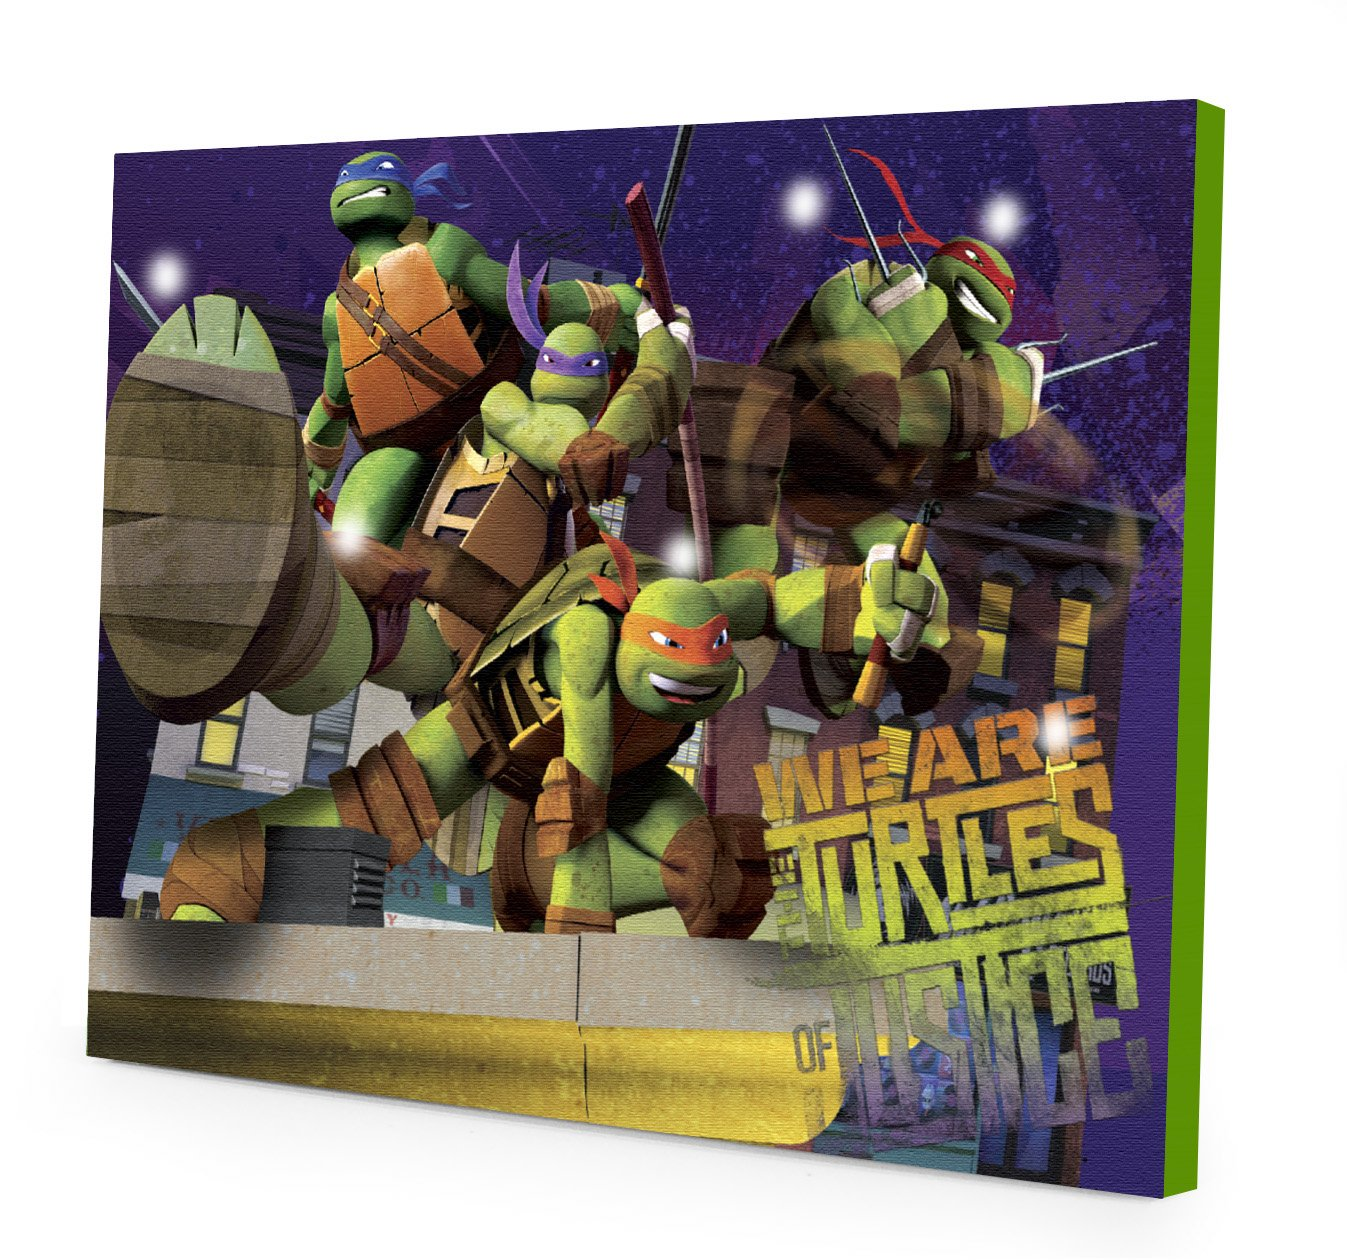 Nickelodeon Teenage Mutant Ninja Turtles - Wall decor